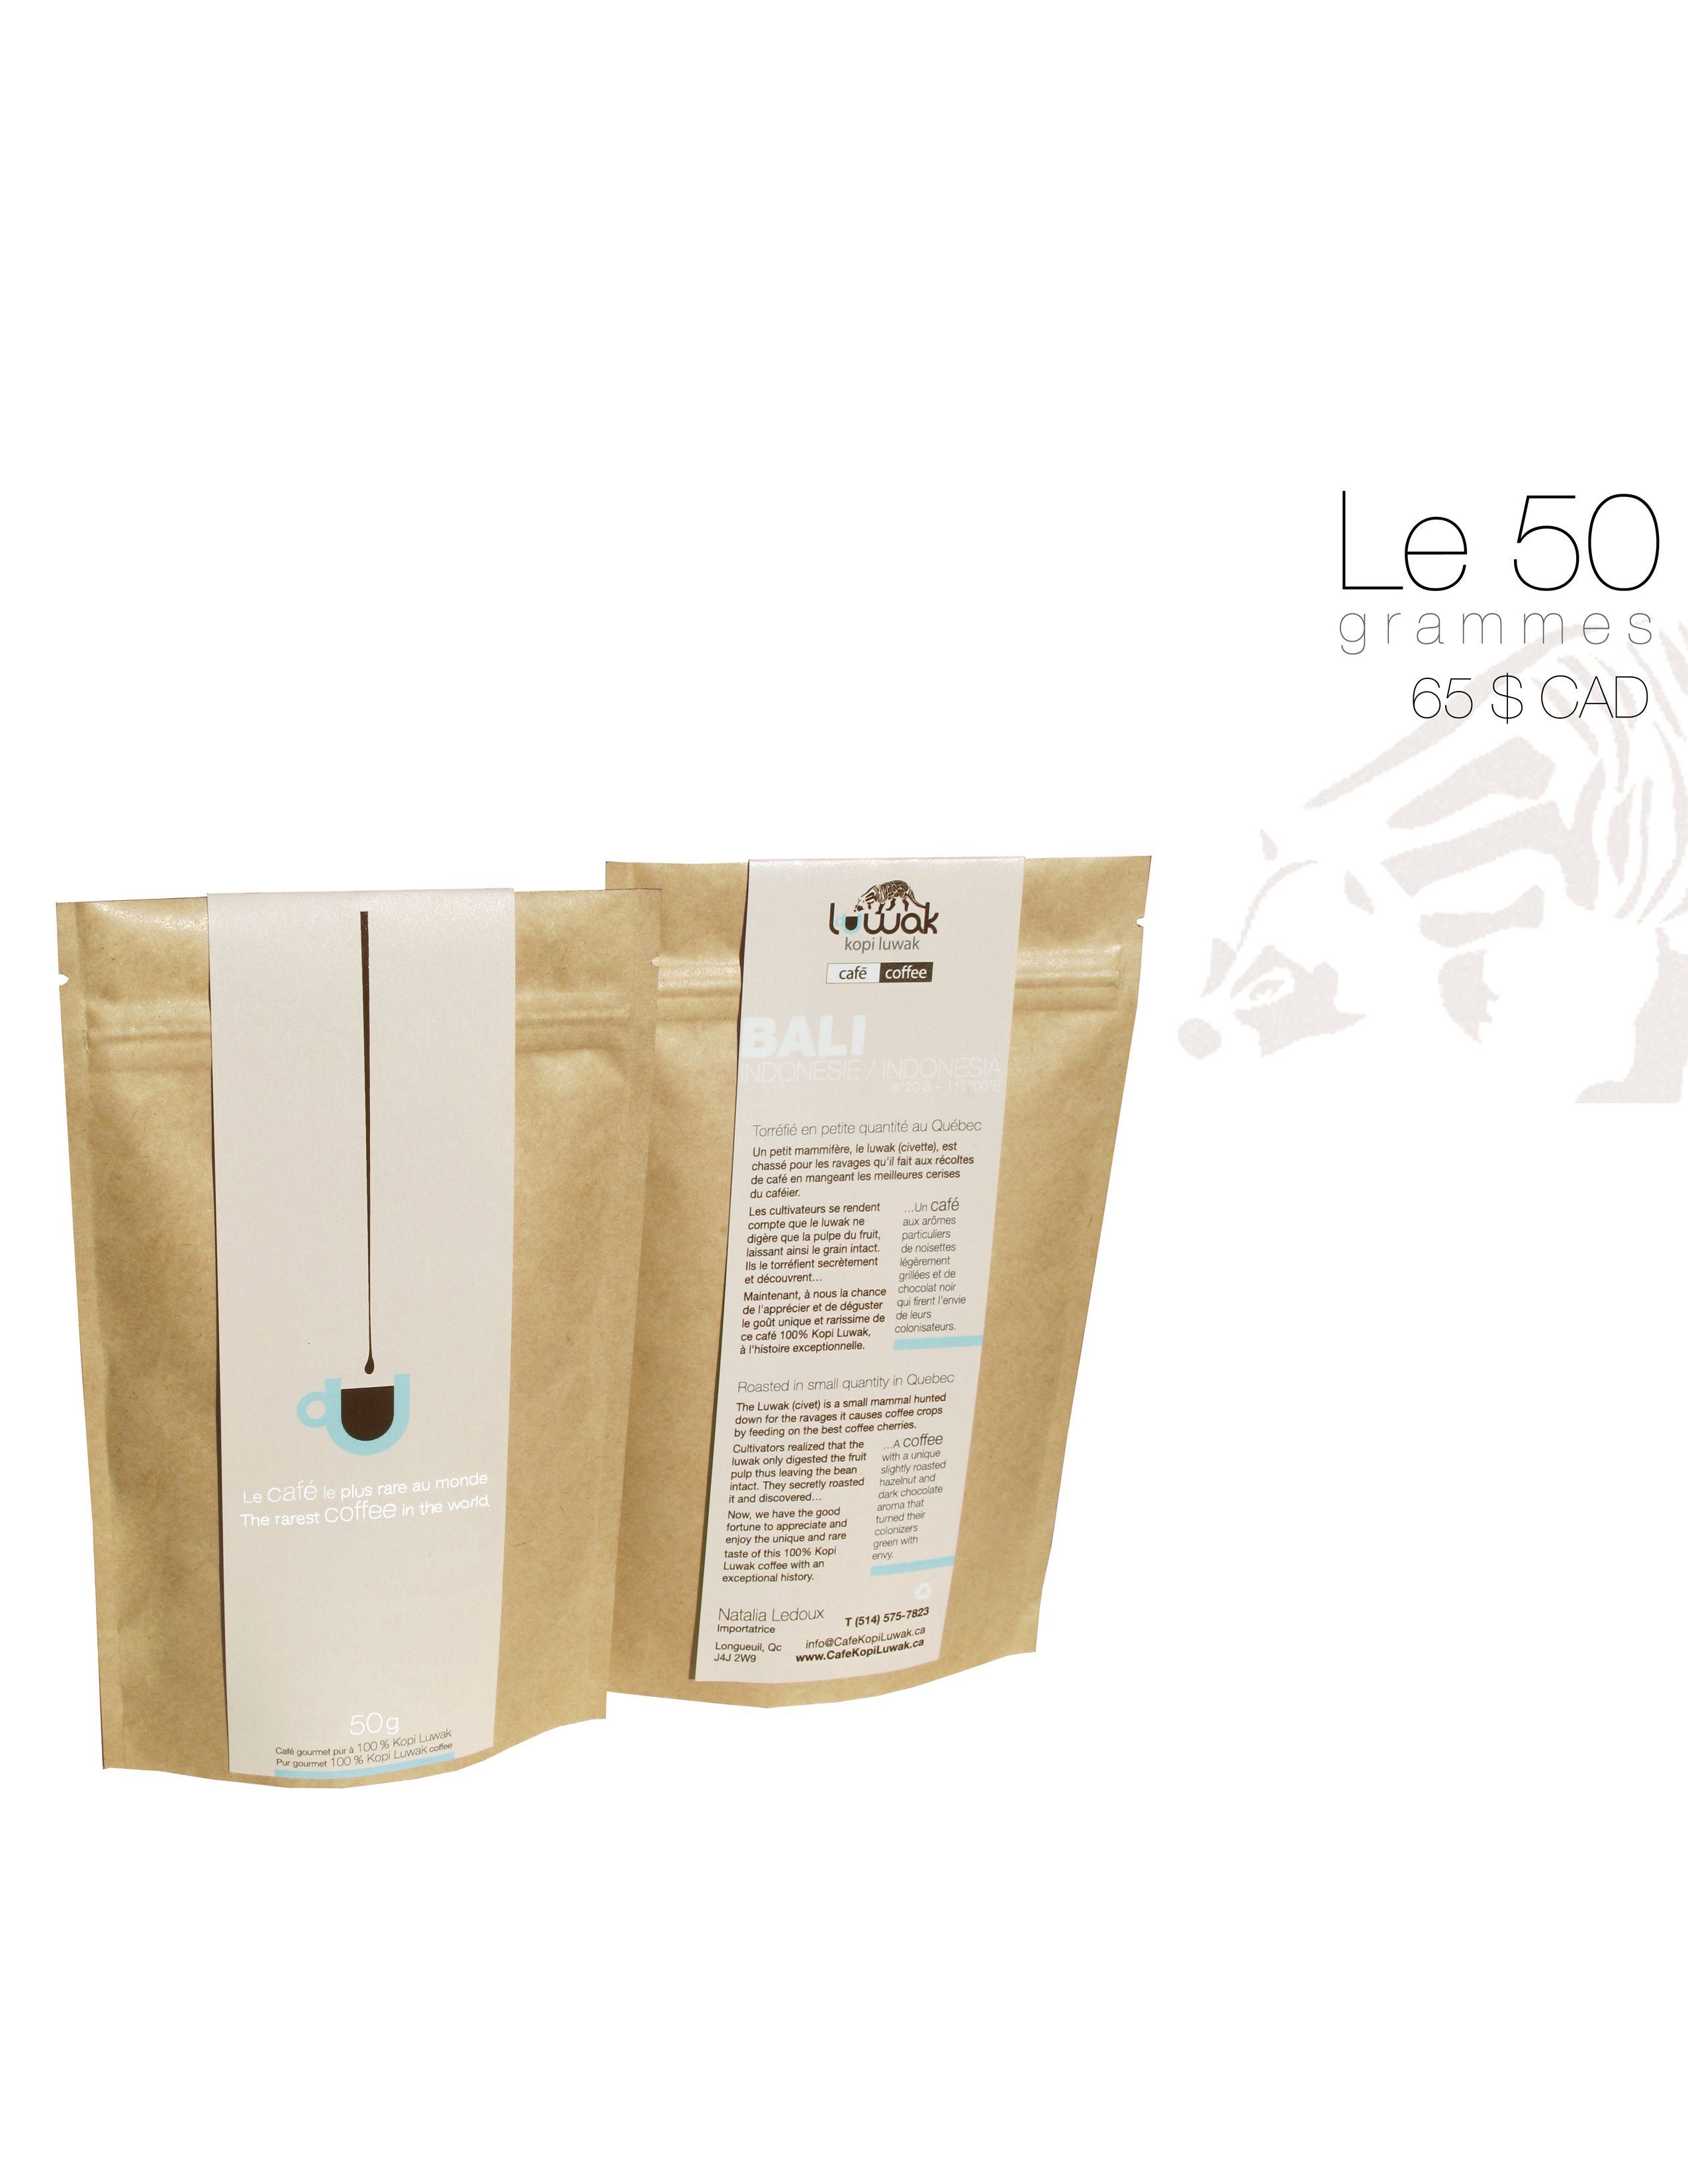 How To Make Kopi Luwak Coffee Packaging Lembah Cimanong 250 Gram By We Only Sell The Best Quality Arabica Our Has Been Specifically Chosen